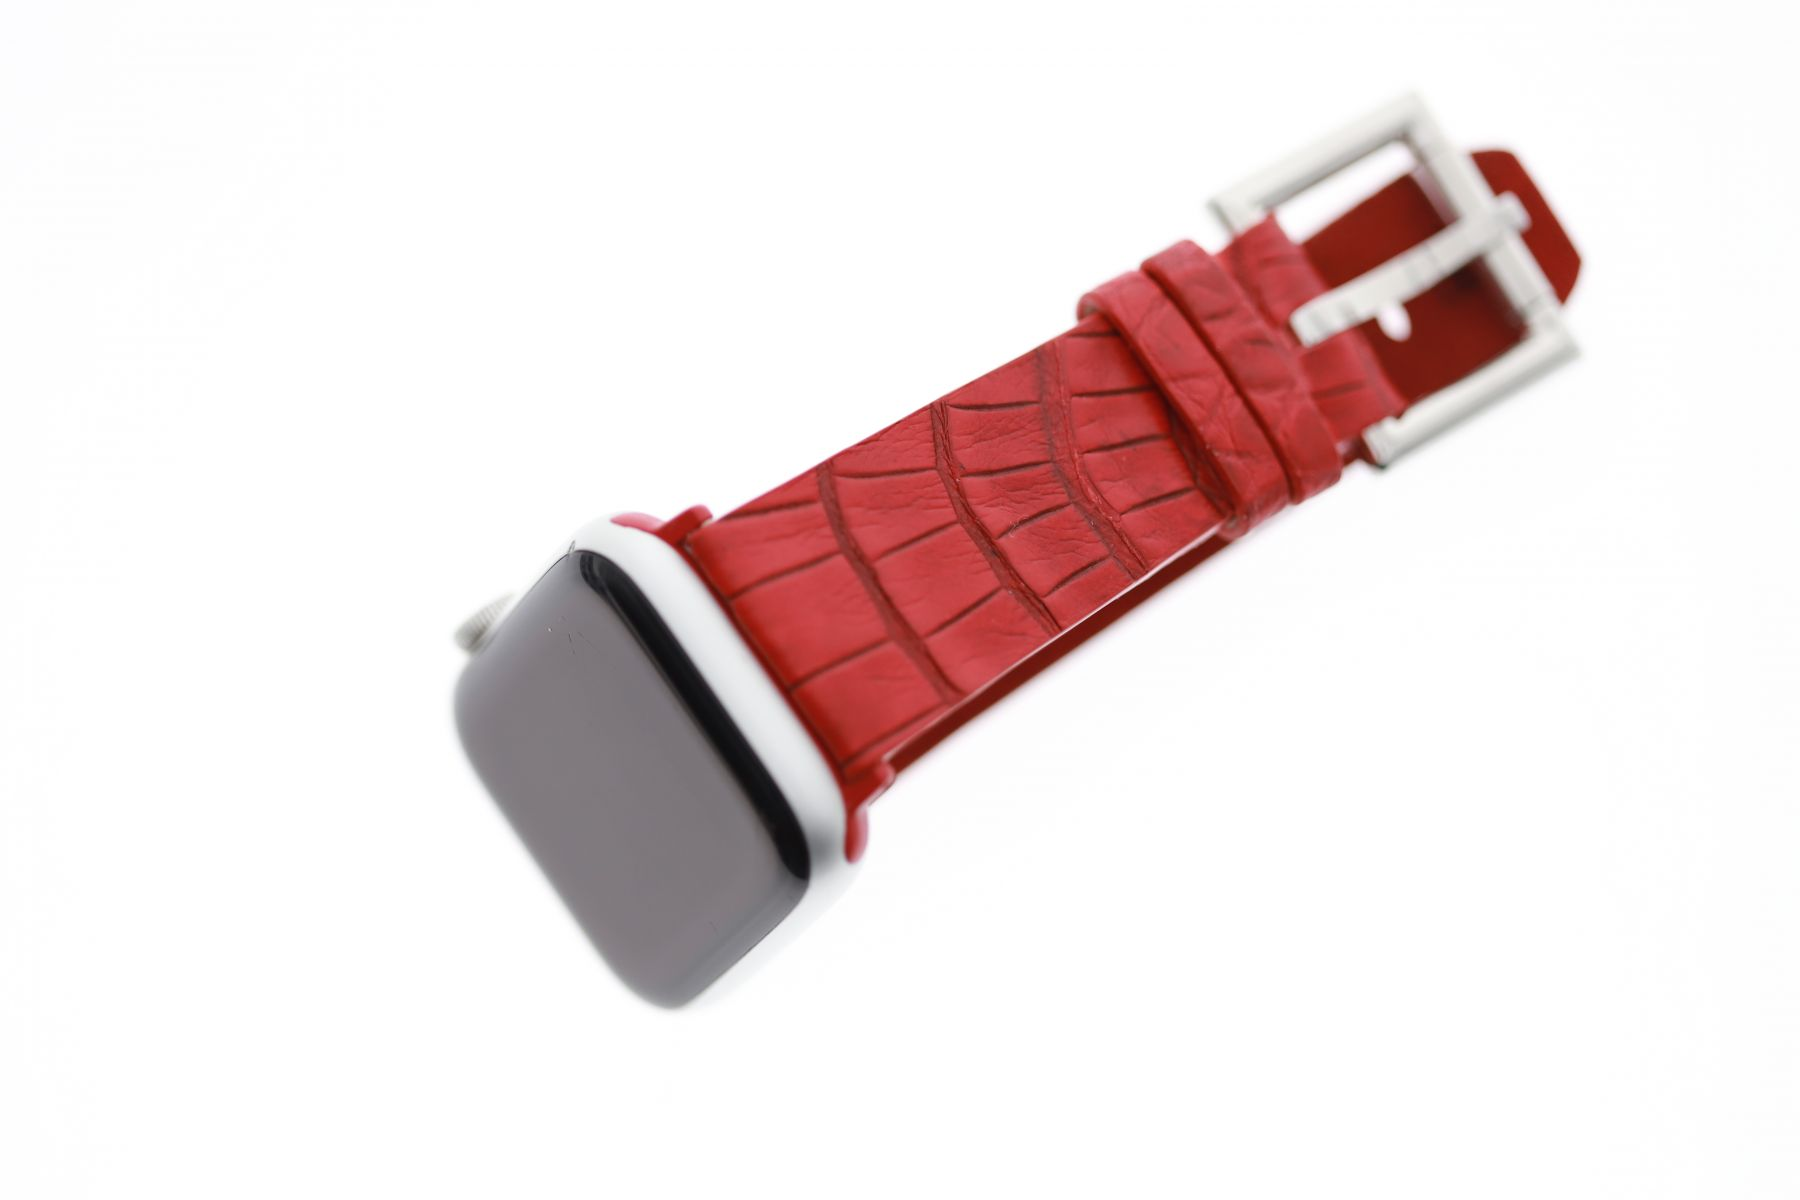 Red Flame Caiman leather strap for Apple Watch with Fixed buckle (All Generations)